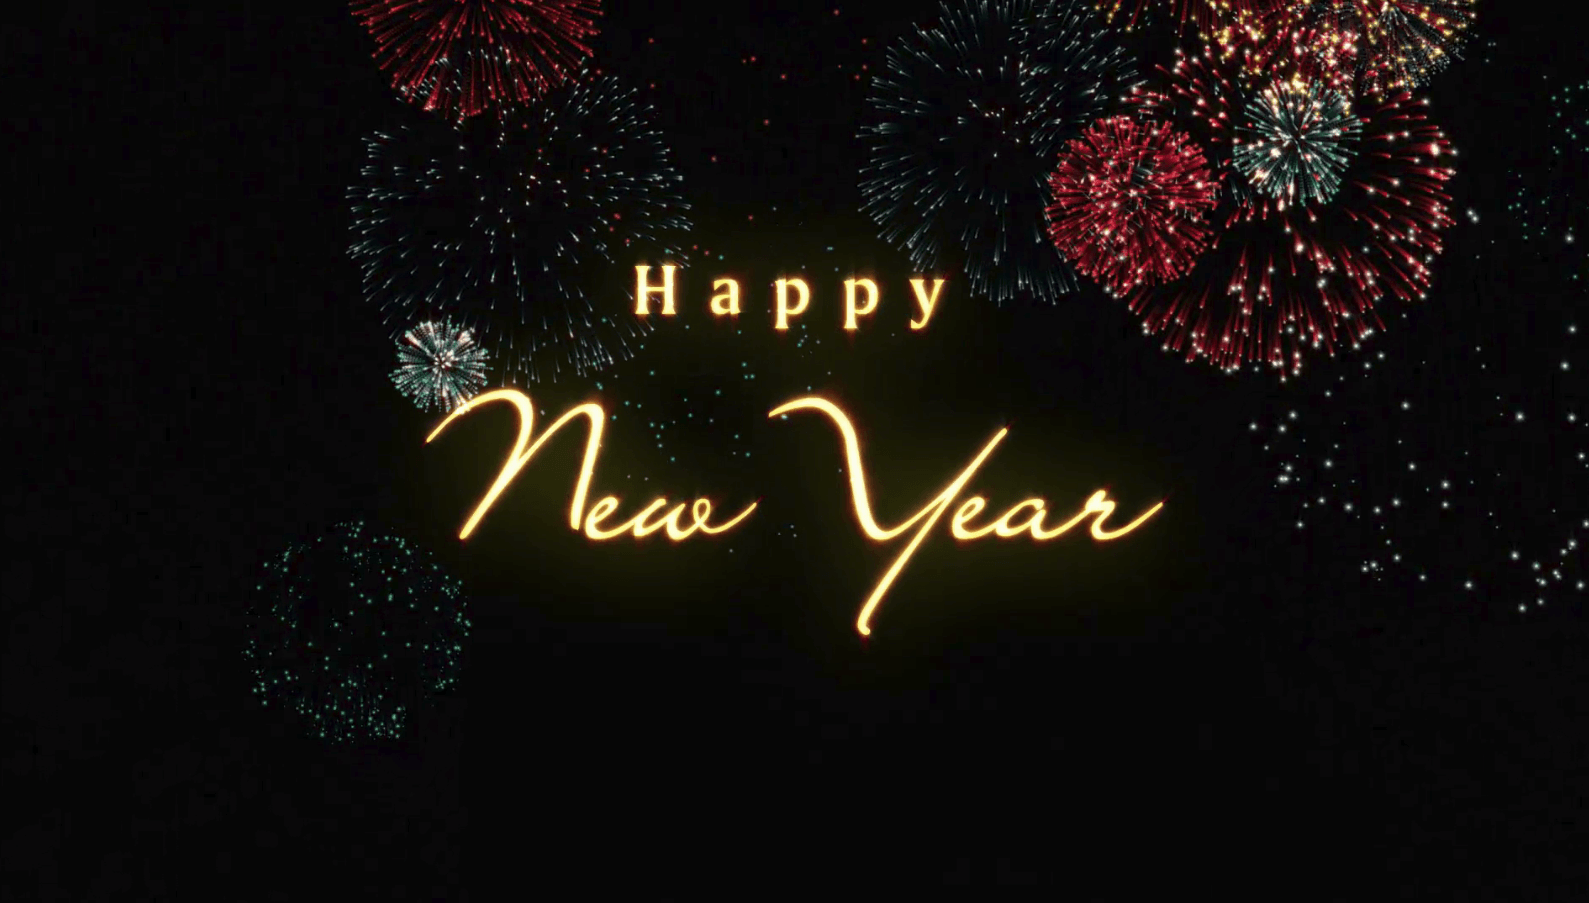 Happy New Year 2019 Wallpapers - Wallpaper Cave